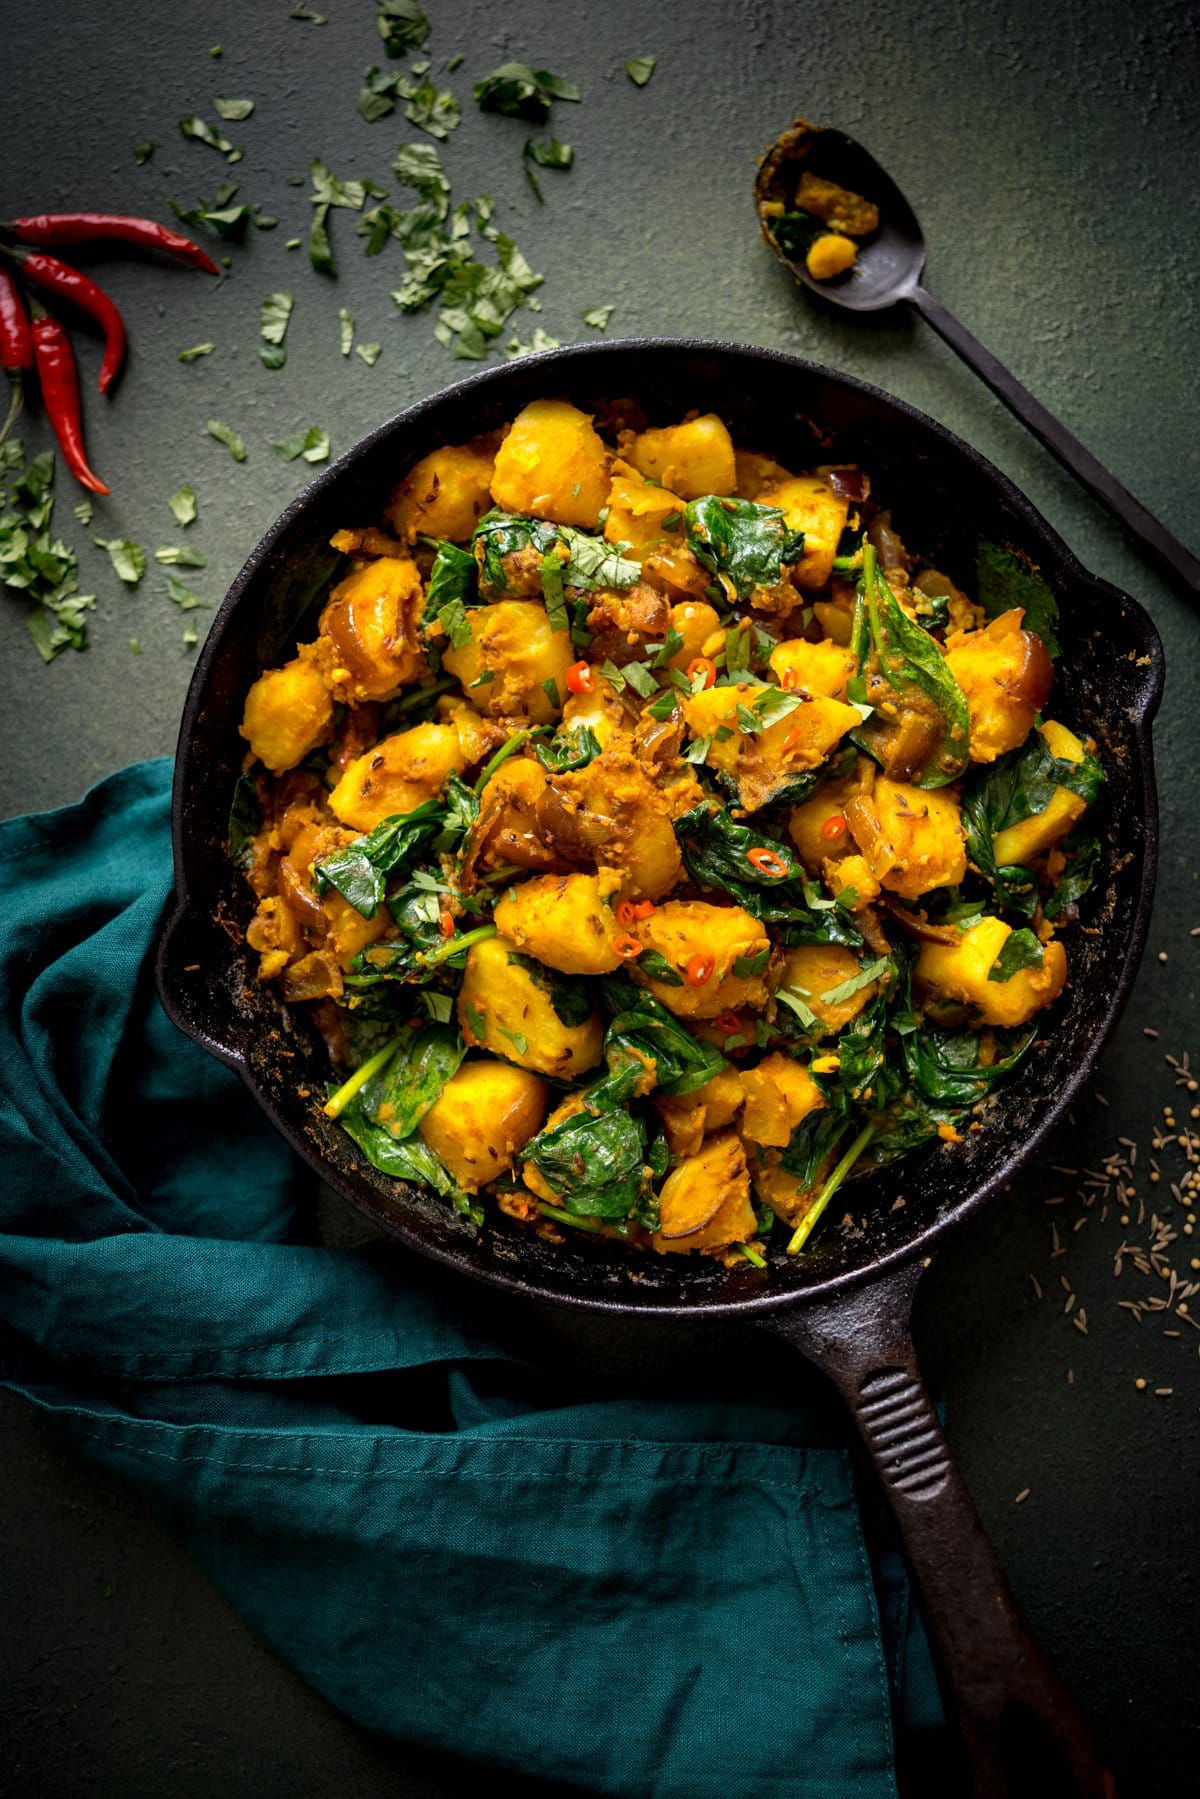 saag aloo in a cast iron pan on a dark green background/ Green napkin, a black spoon and garnishes surround the pan.